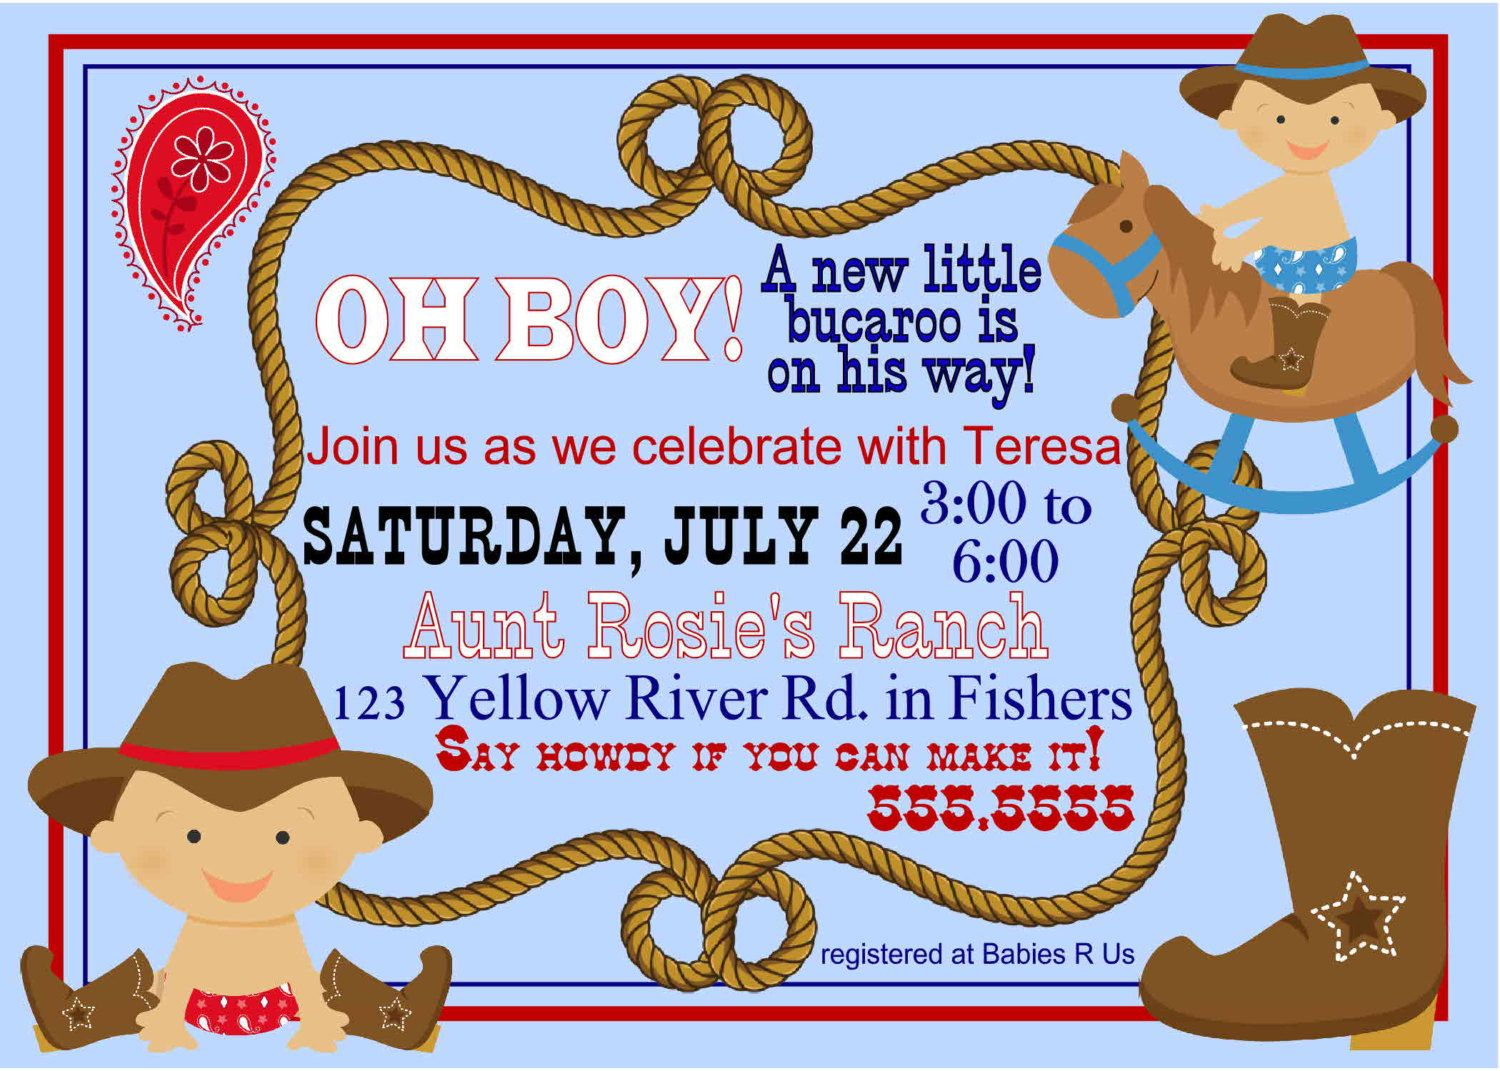 94821d9b9e4474b9d50205697d7f95f0 digital lil bucaroo cowboy baby shower by spencervillejunction, $,Baby Shower Invitations Cowboy Theme